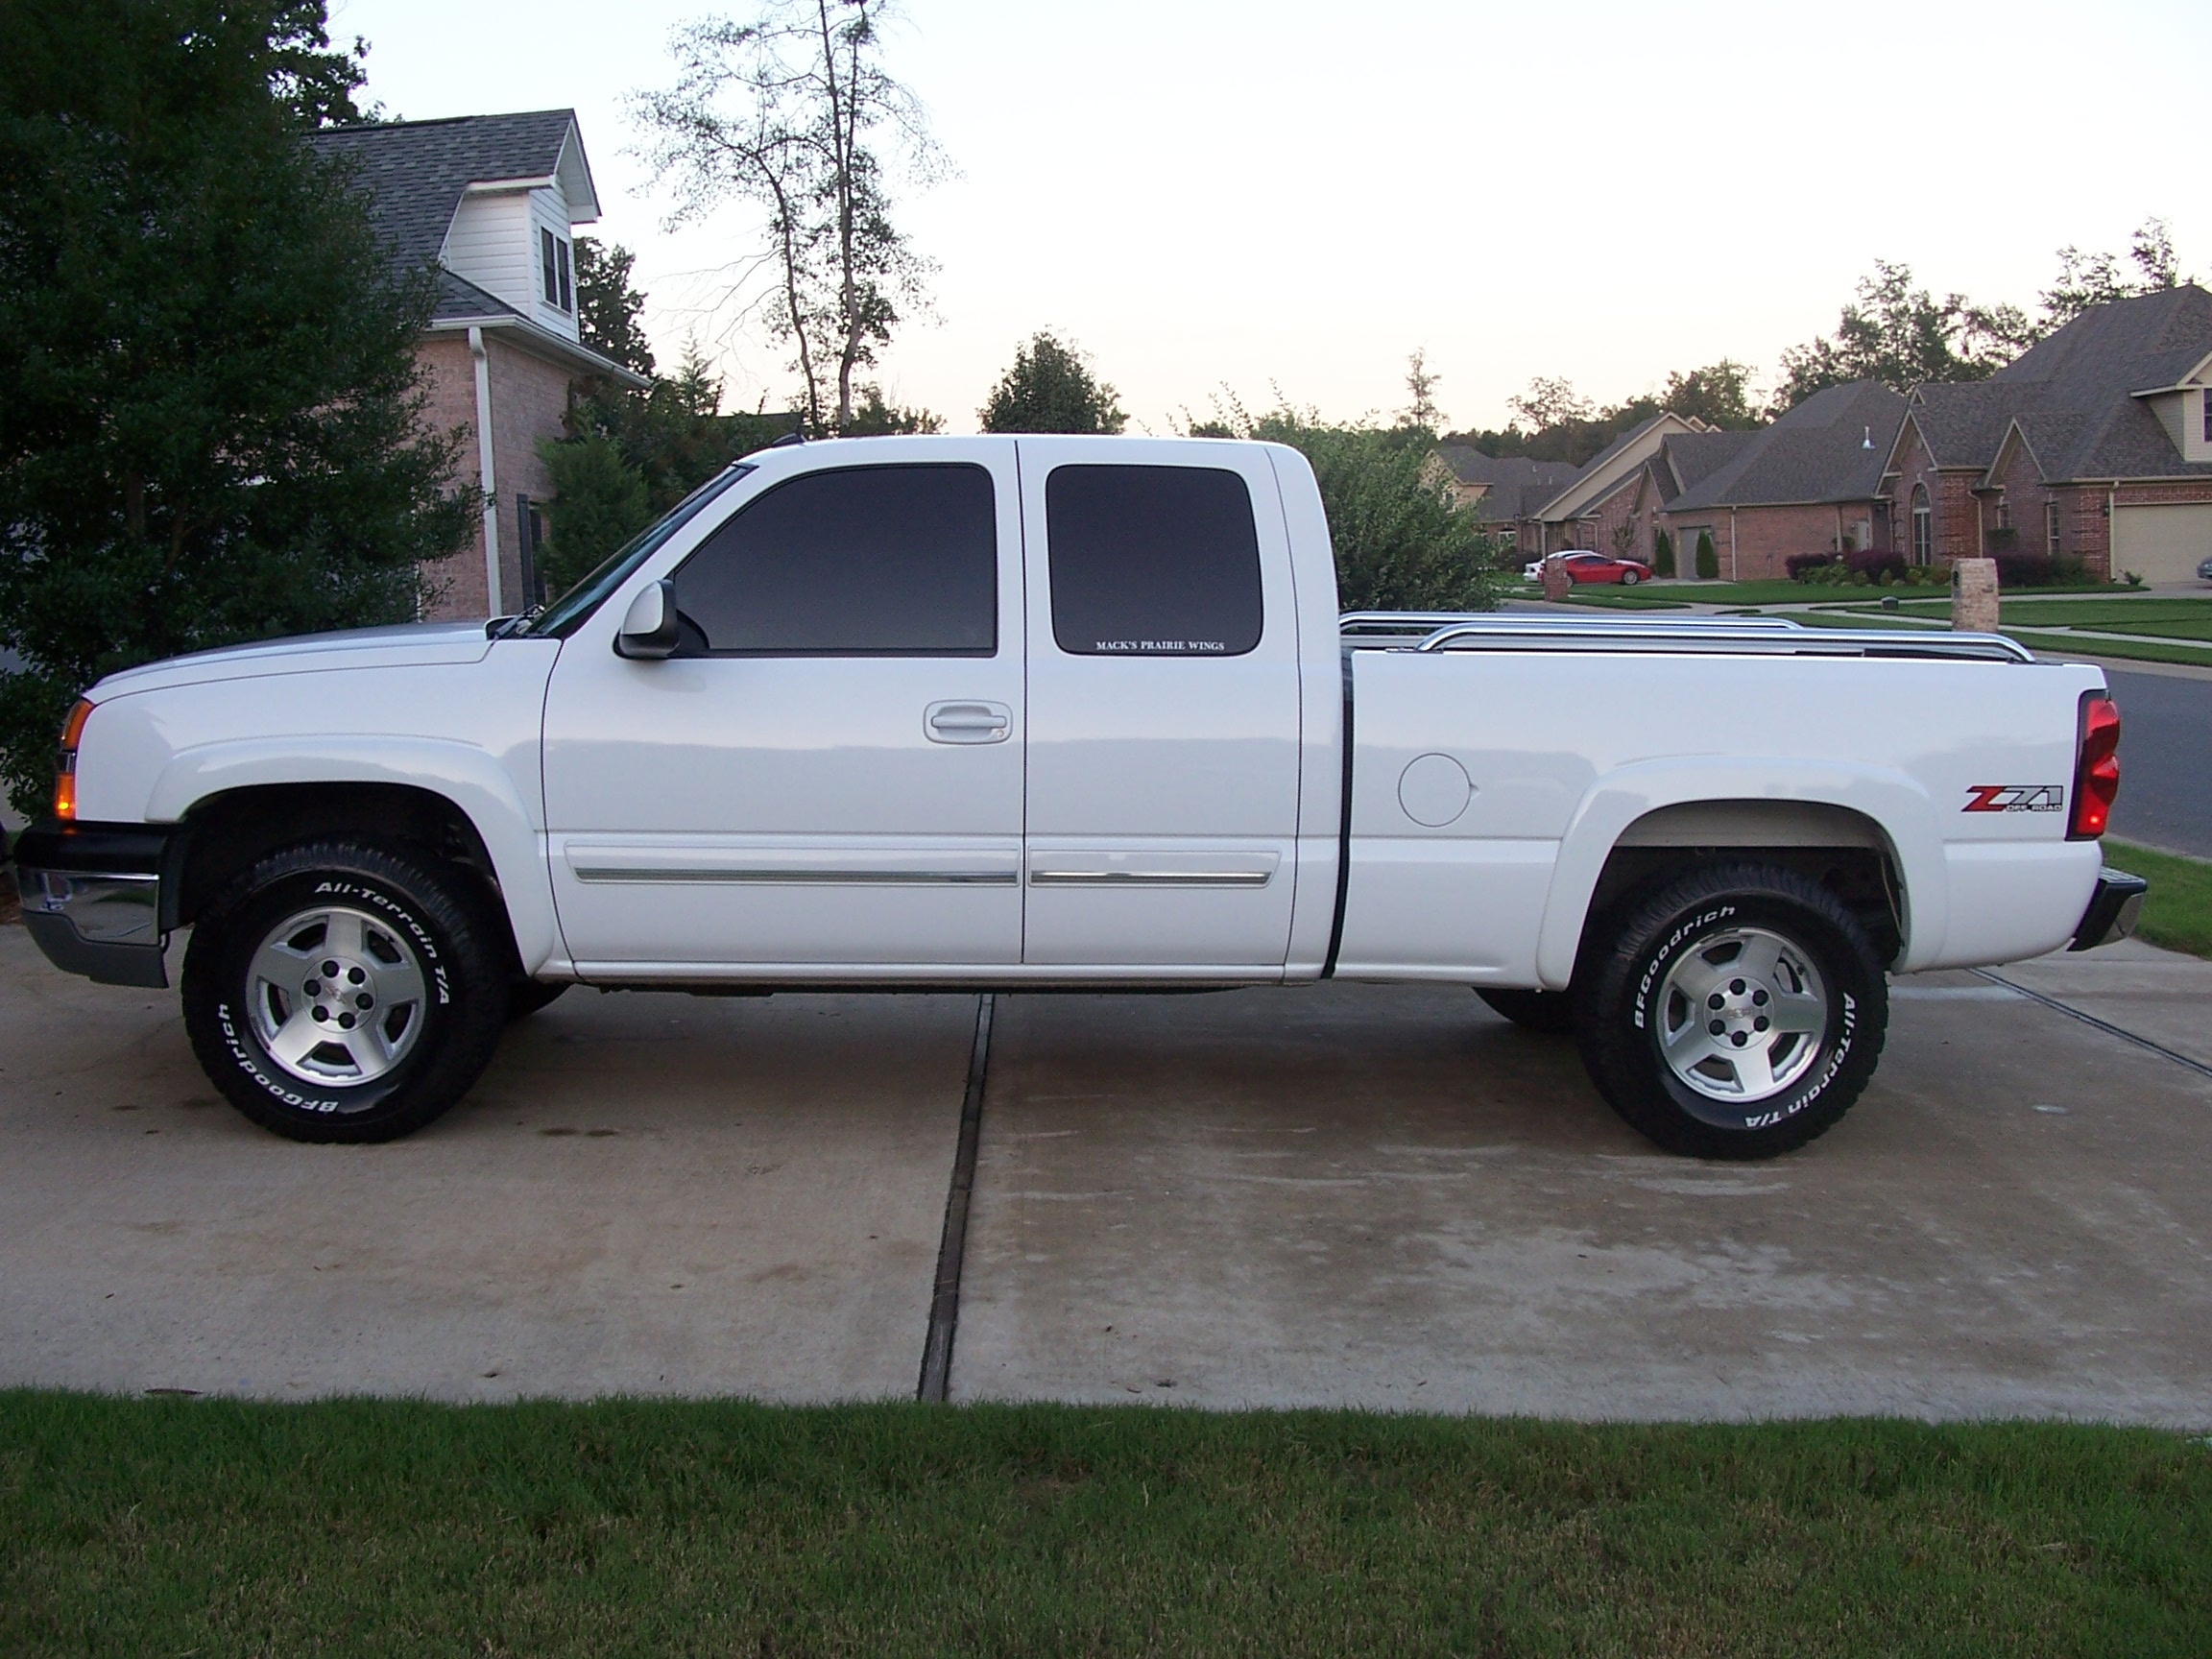 09challyclassic 2004 chevrolet silverado 1500 extended cab. Black Bedroom Furniture Sets. Home Design Ideas